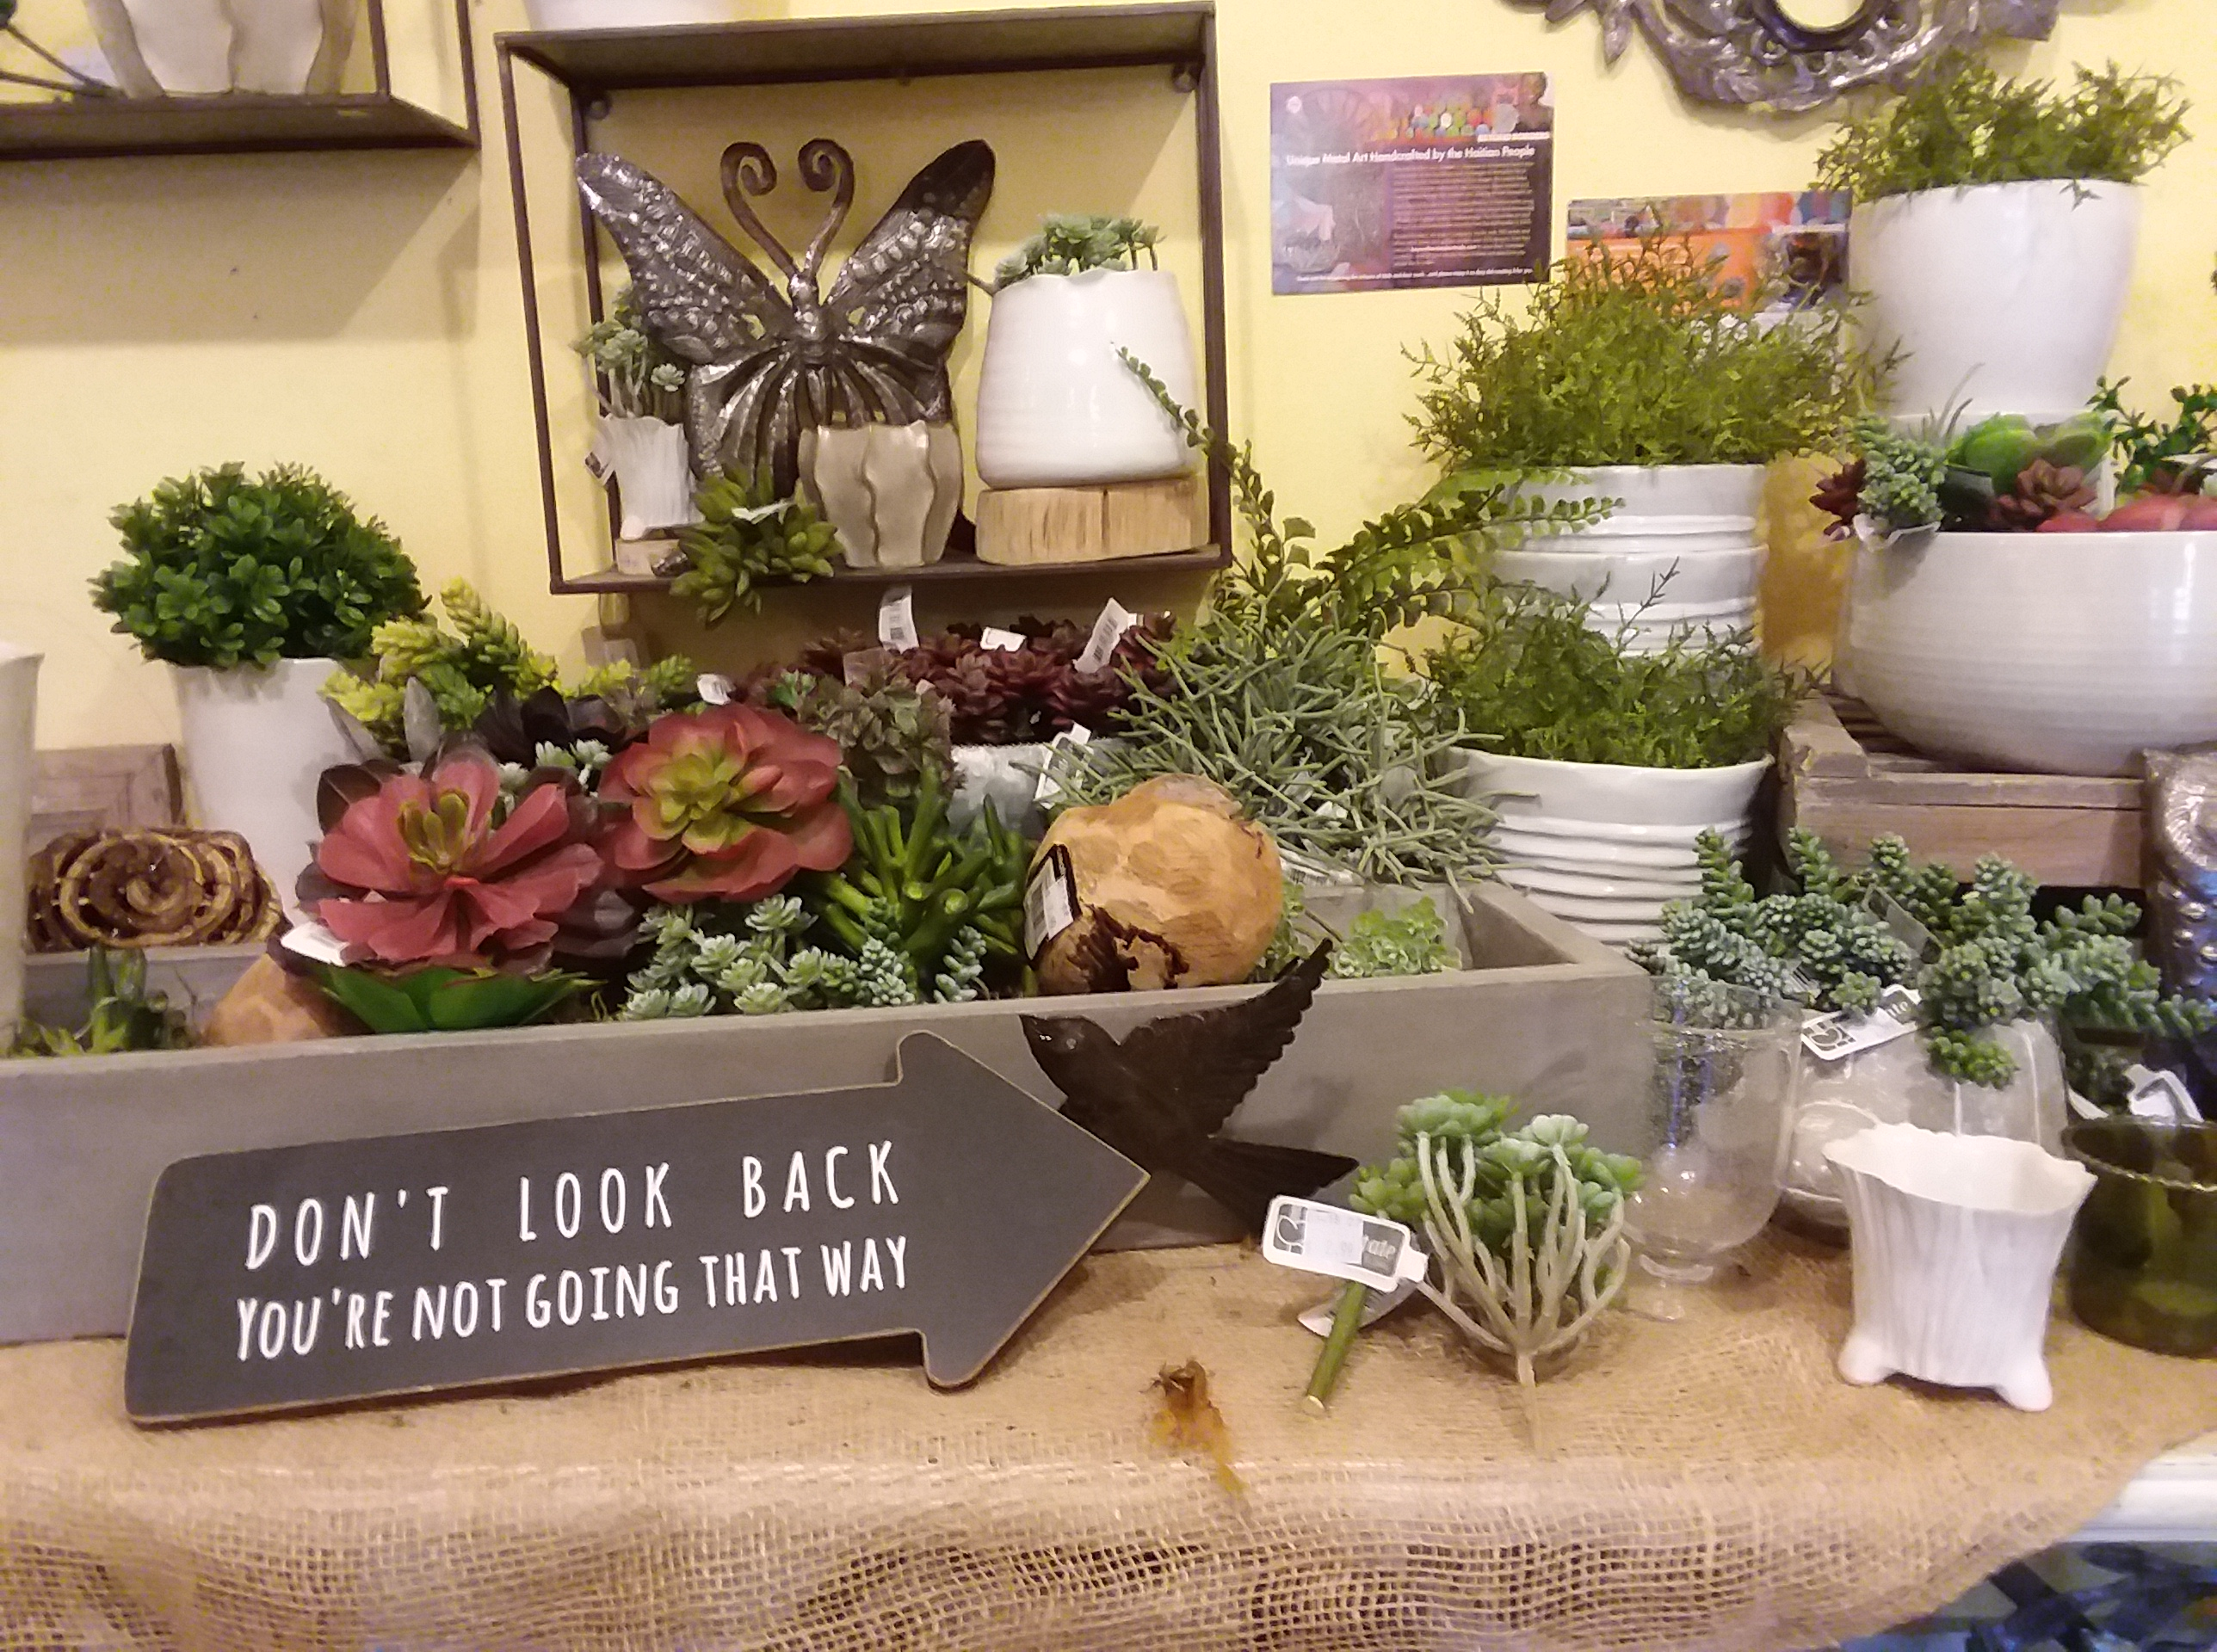 Gardener's Choice gift shop display